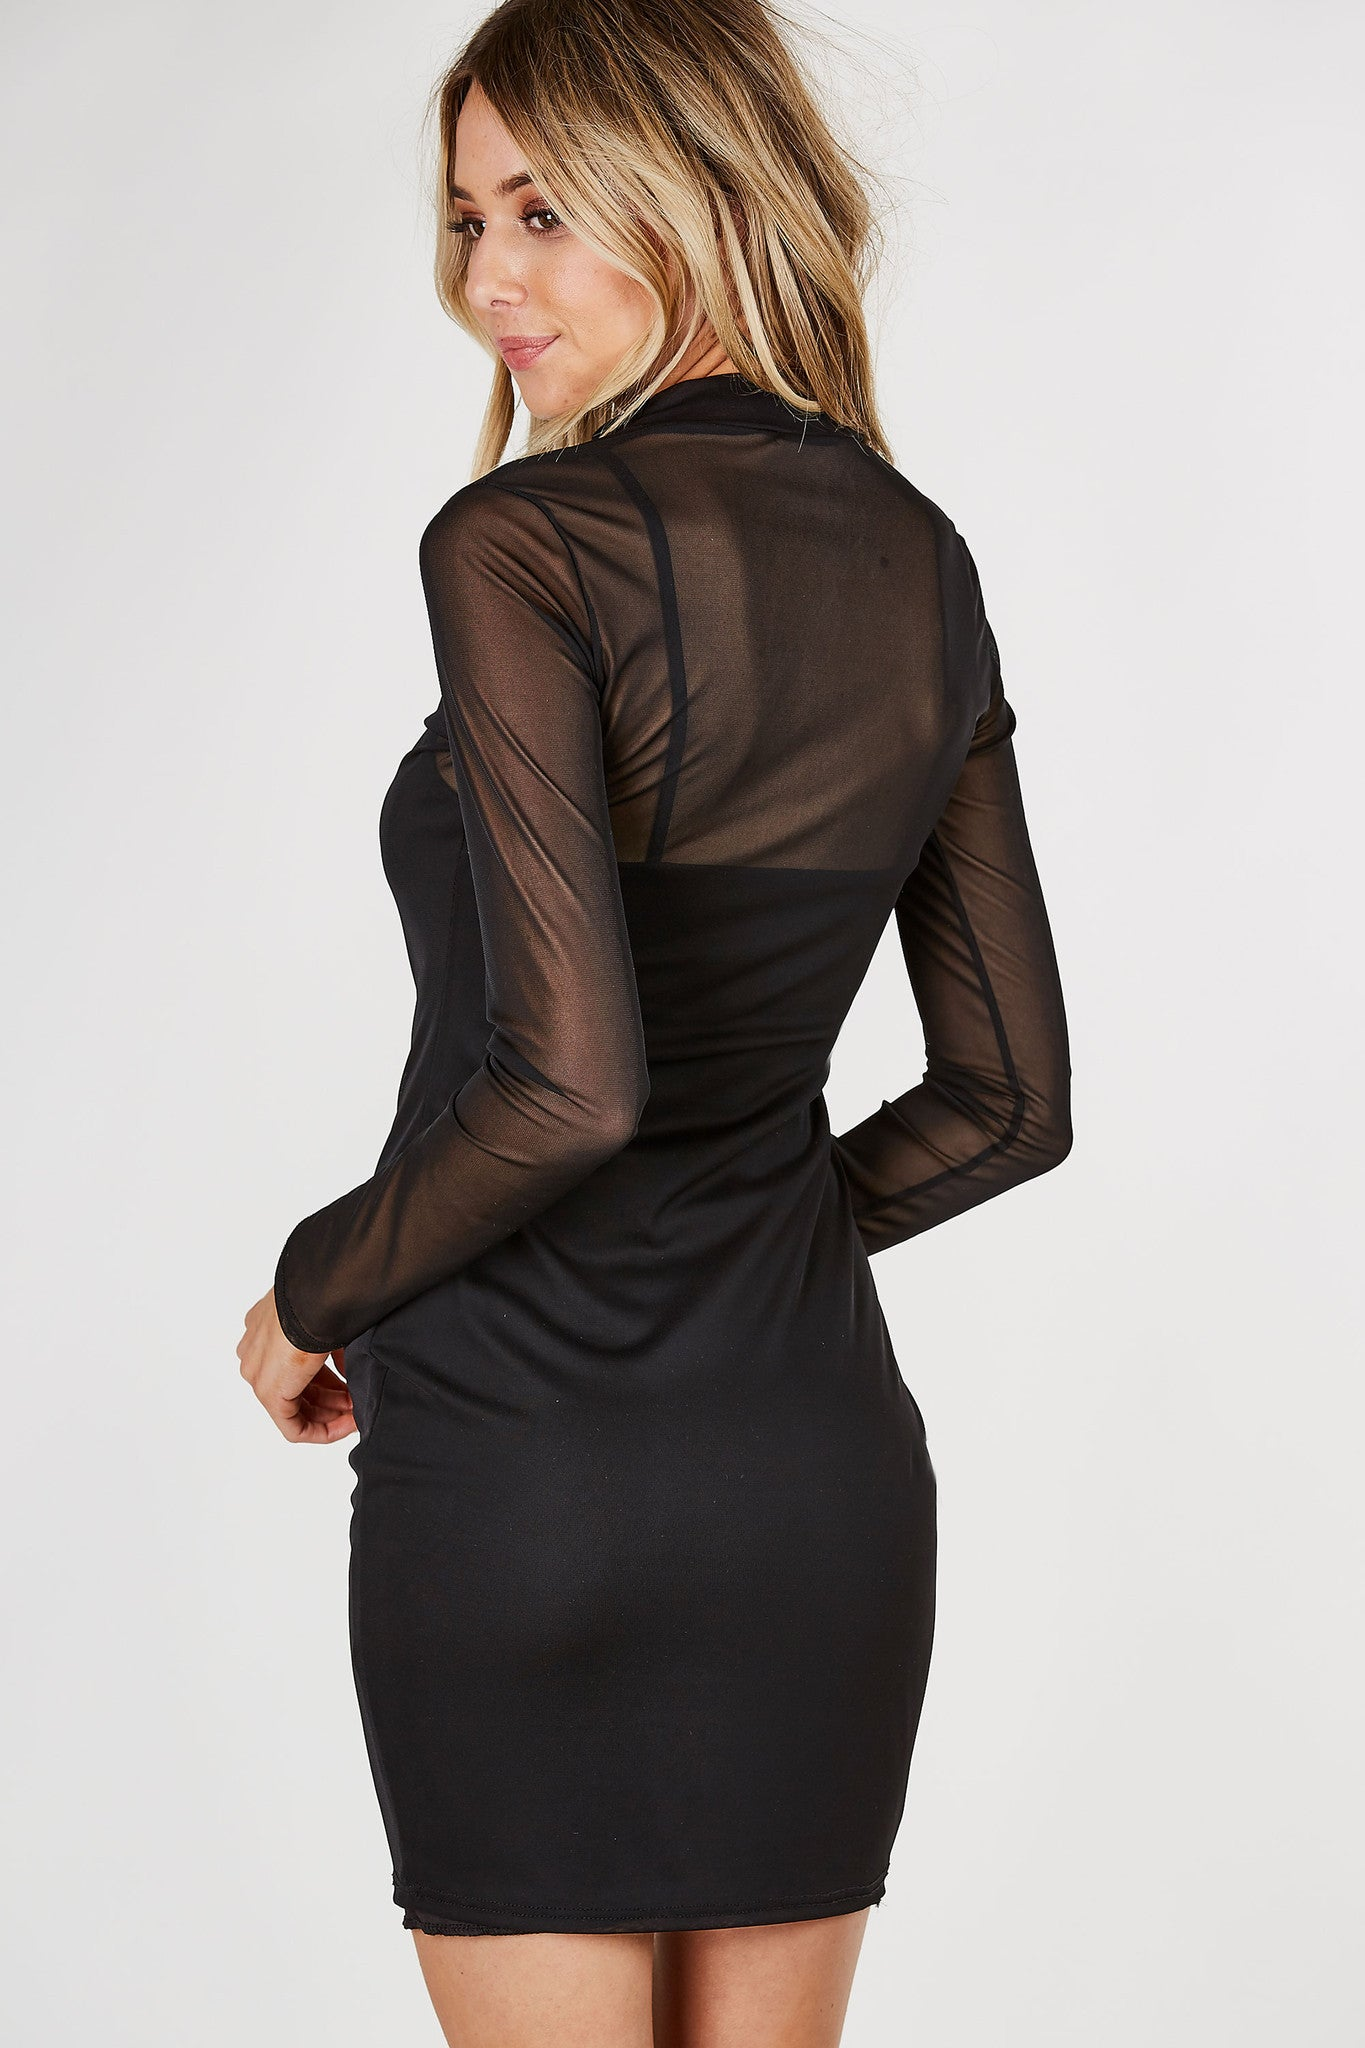 Long sleeve midi dress with mock neckline. Mesh material throughout with cami lining underneath.